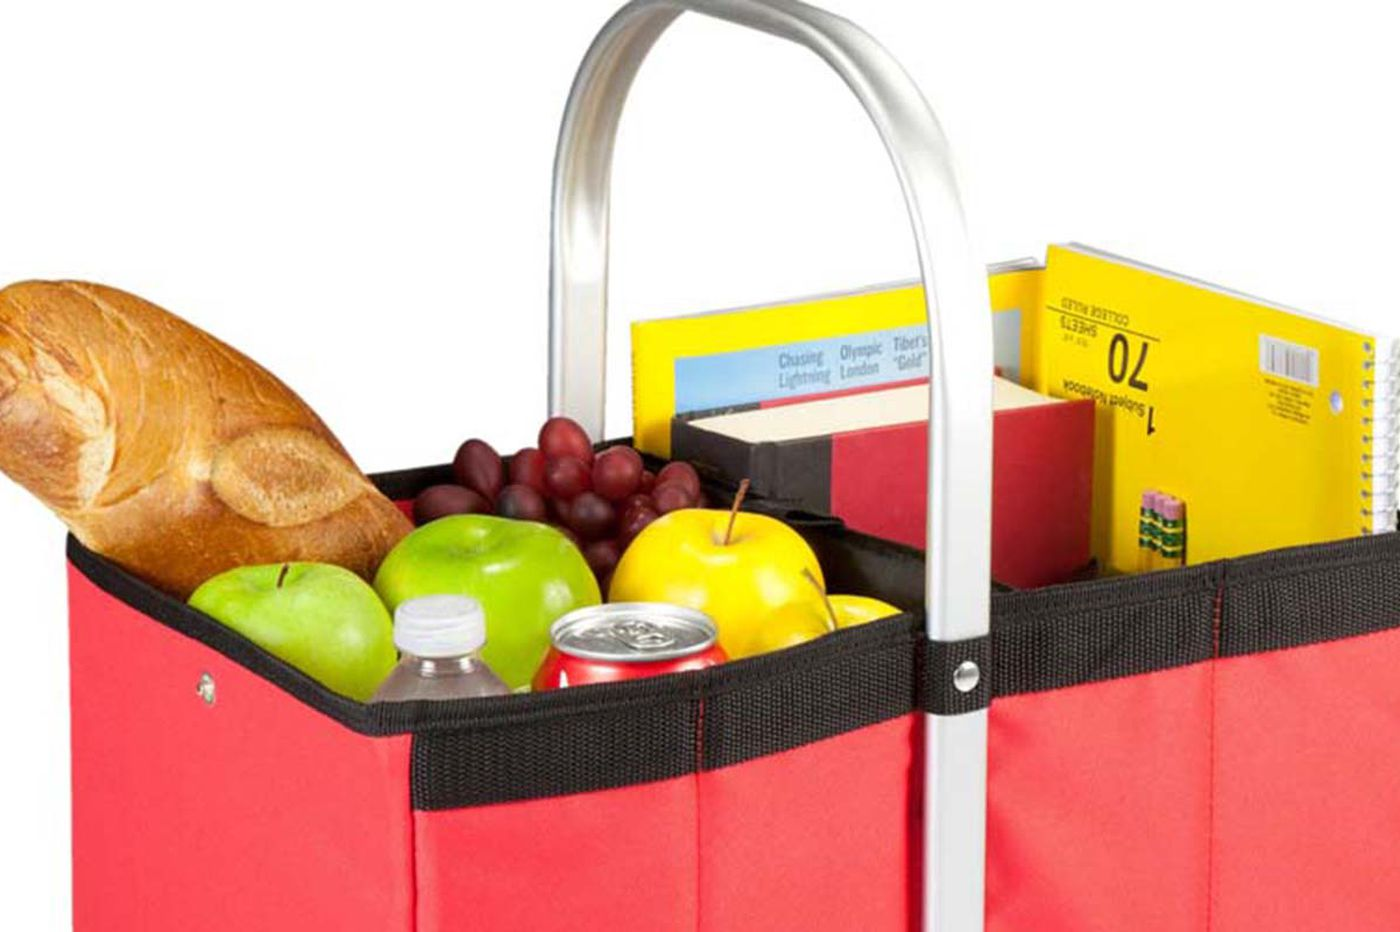 Collapsible baskets for shopping